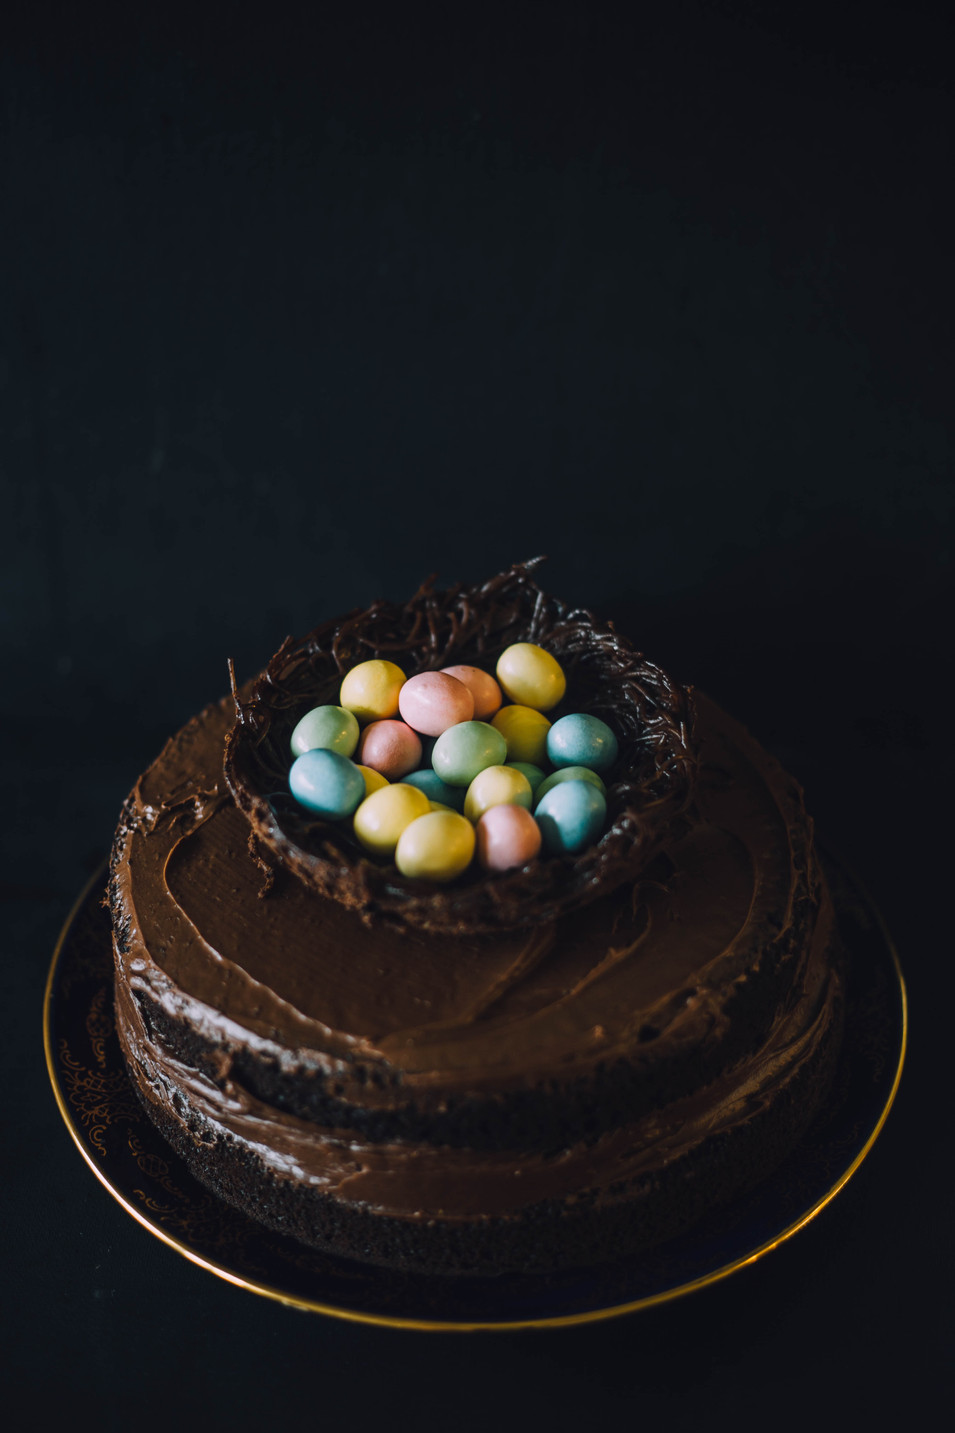 Product Photo of a chocolate cake